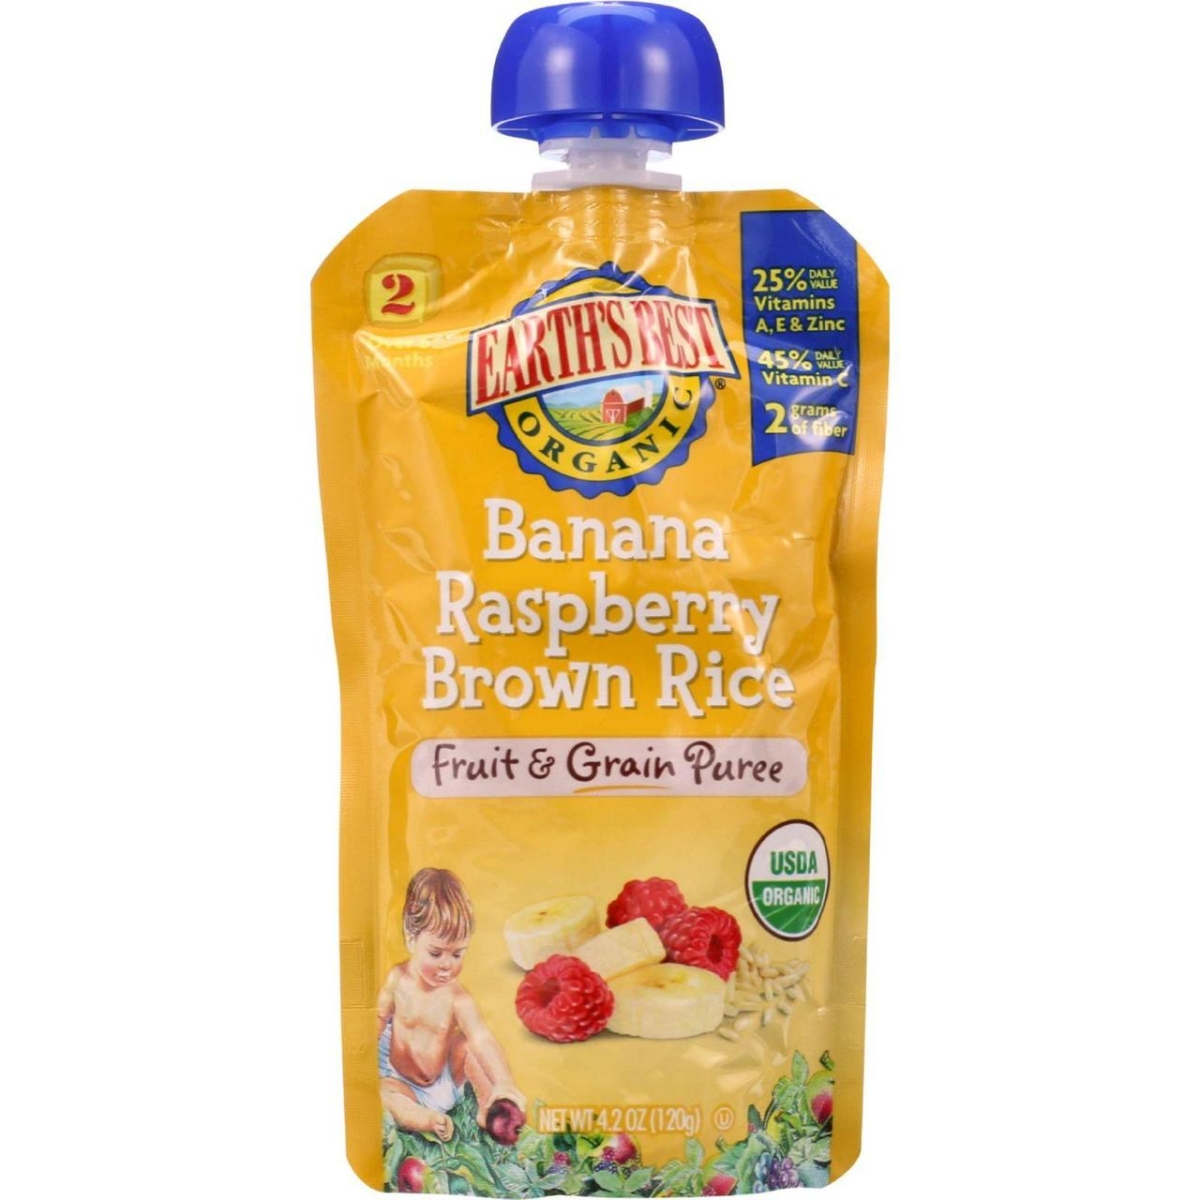 Earths Best HG1154863 4.2 oz Organic Fruit & Grain Puree Baby Food for Age 6 Months Plus Stage 2 - Banana Raspberry Brown Rice Case of 12